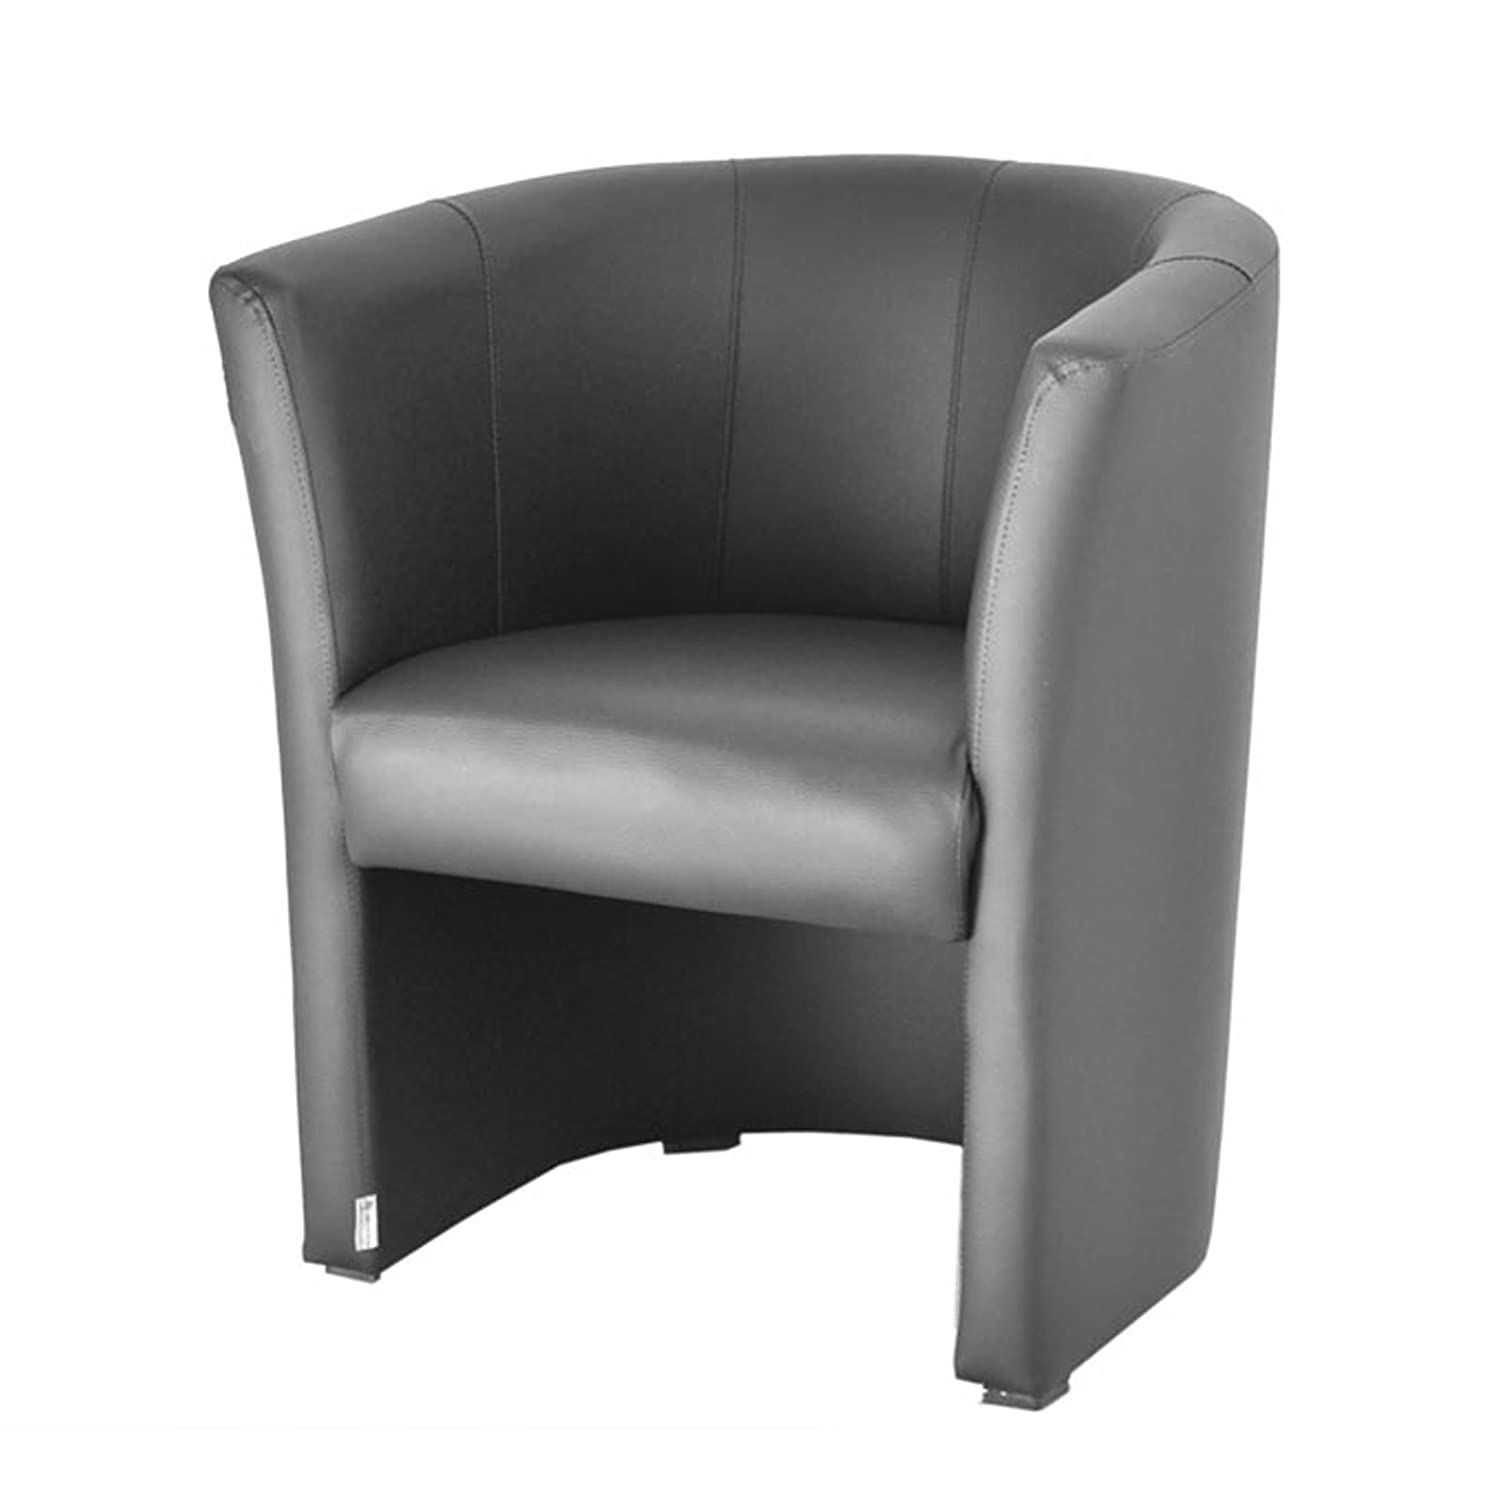 Cocktailsessel ikea  Lounge- & Cocktailsessel | Amazon.de